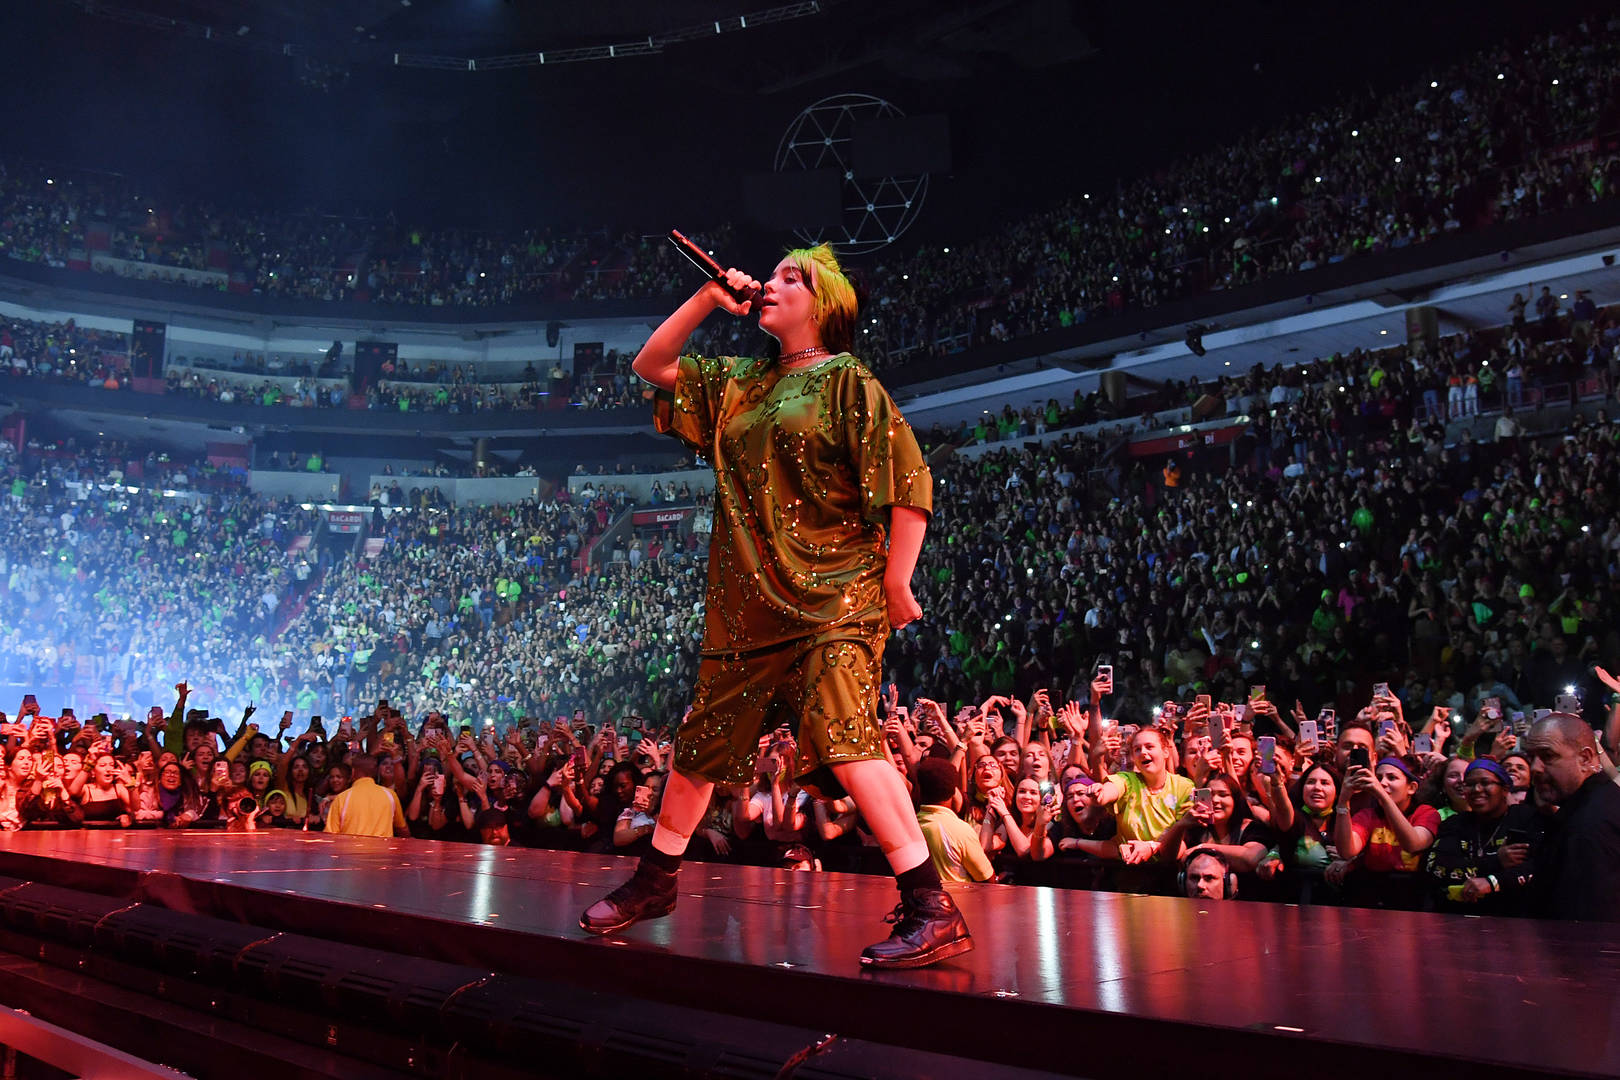 Live Nation tours cancelled postponed pause Post Malone Billie Eilish Jason Aldean, Zac Brown Band, Cher, Kiss, Post Malone, Tool, Lynyrd Skynyrd, Chris Stapleton concert domestic international coronavirus